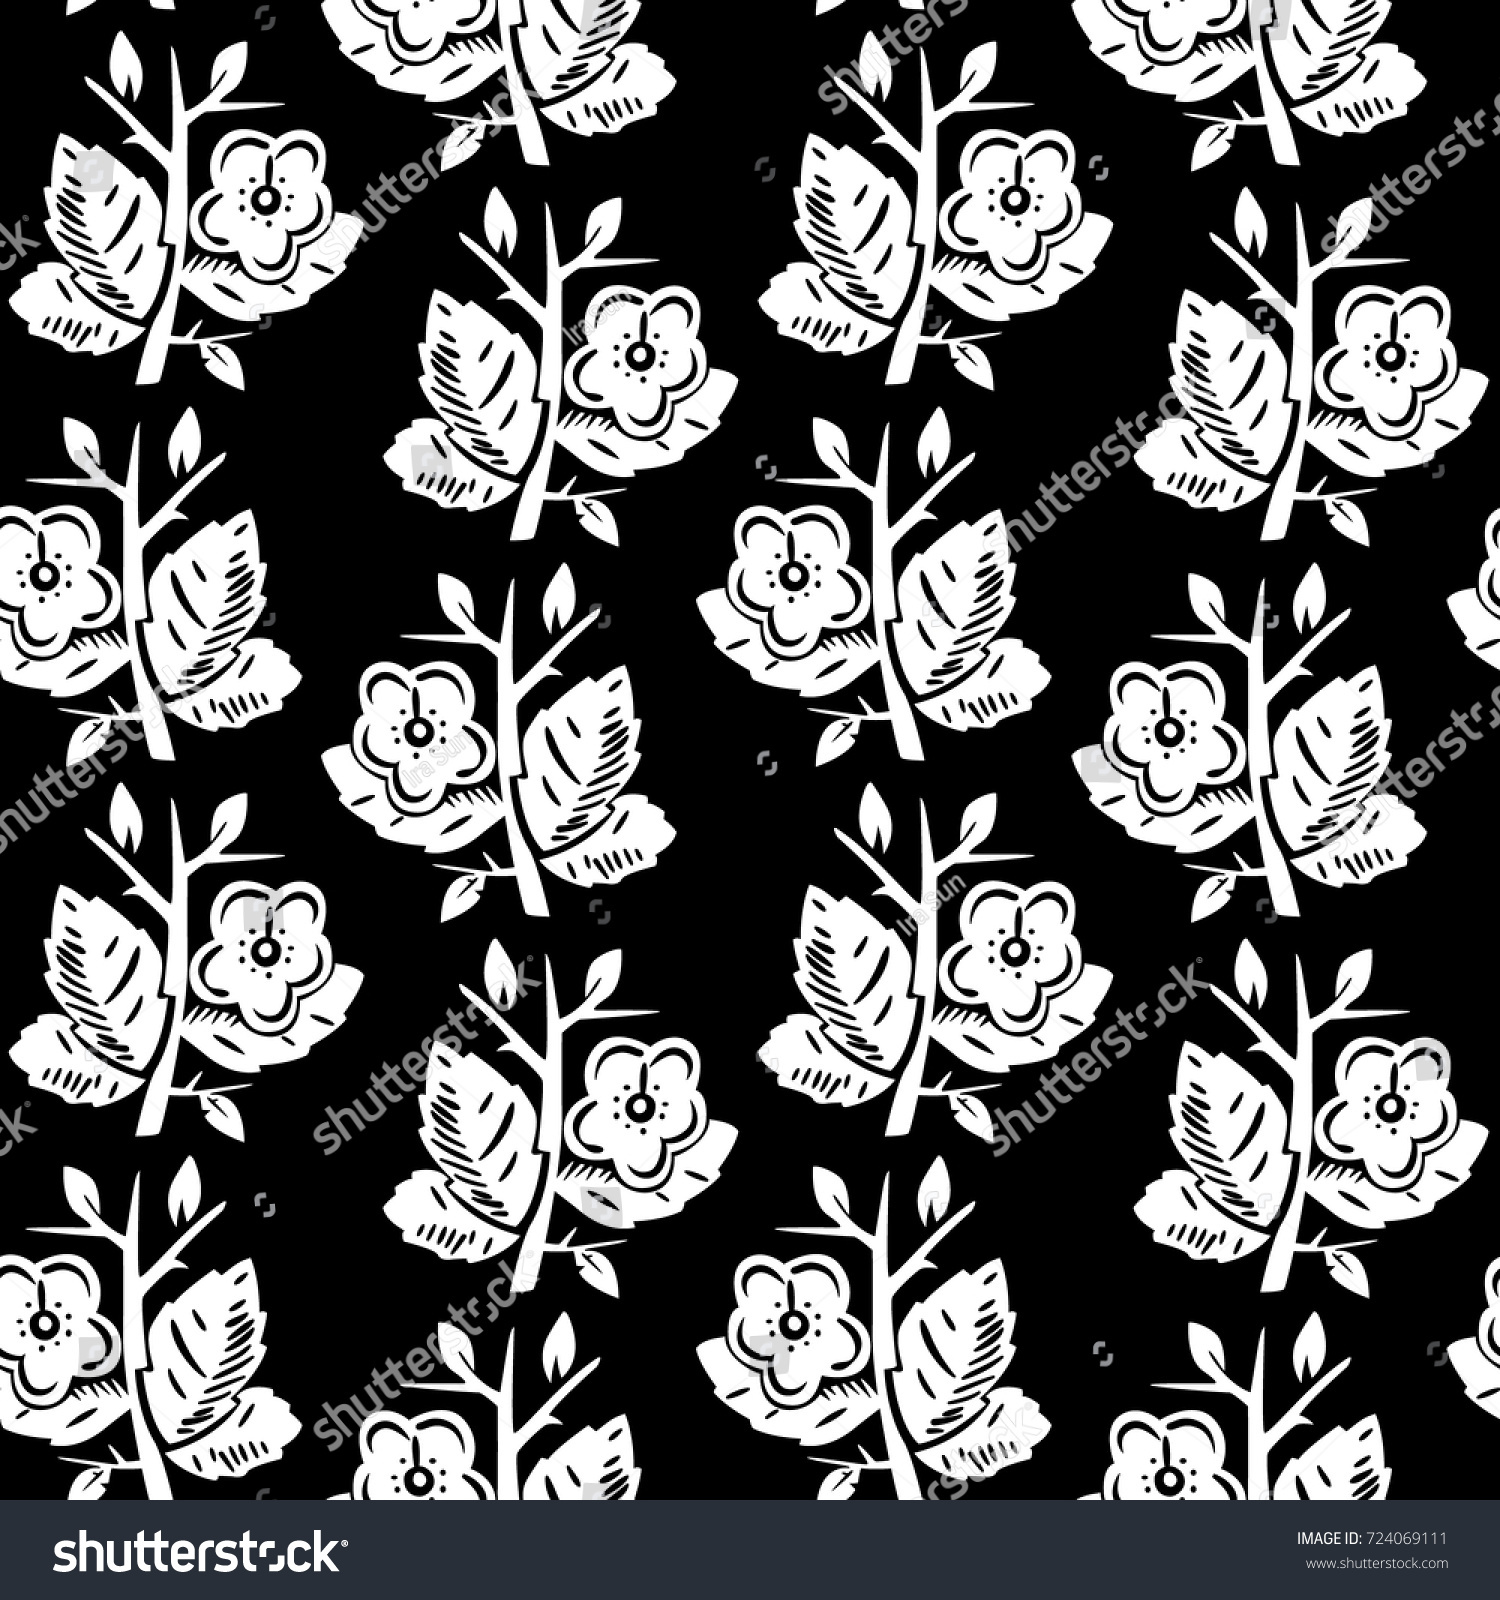 Vector Illustration Of Abstract Flat Flowers Pattern White Flowers